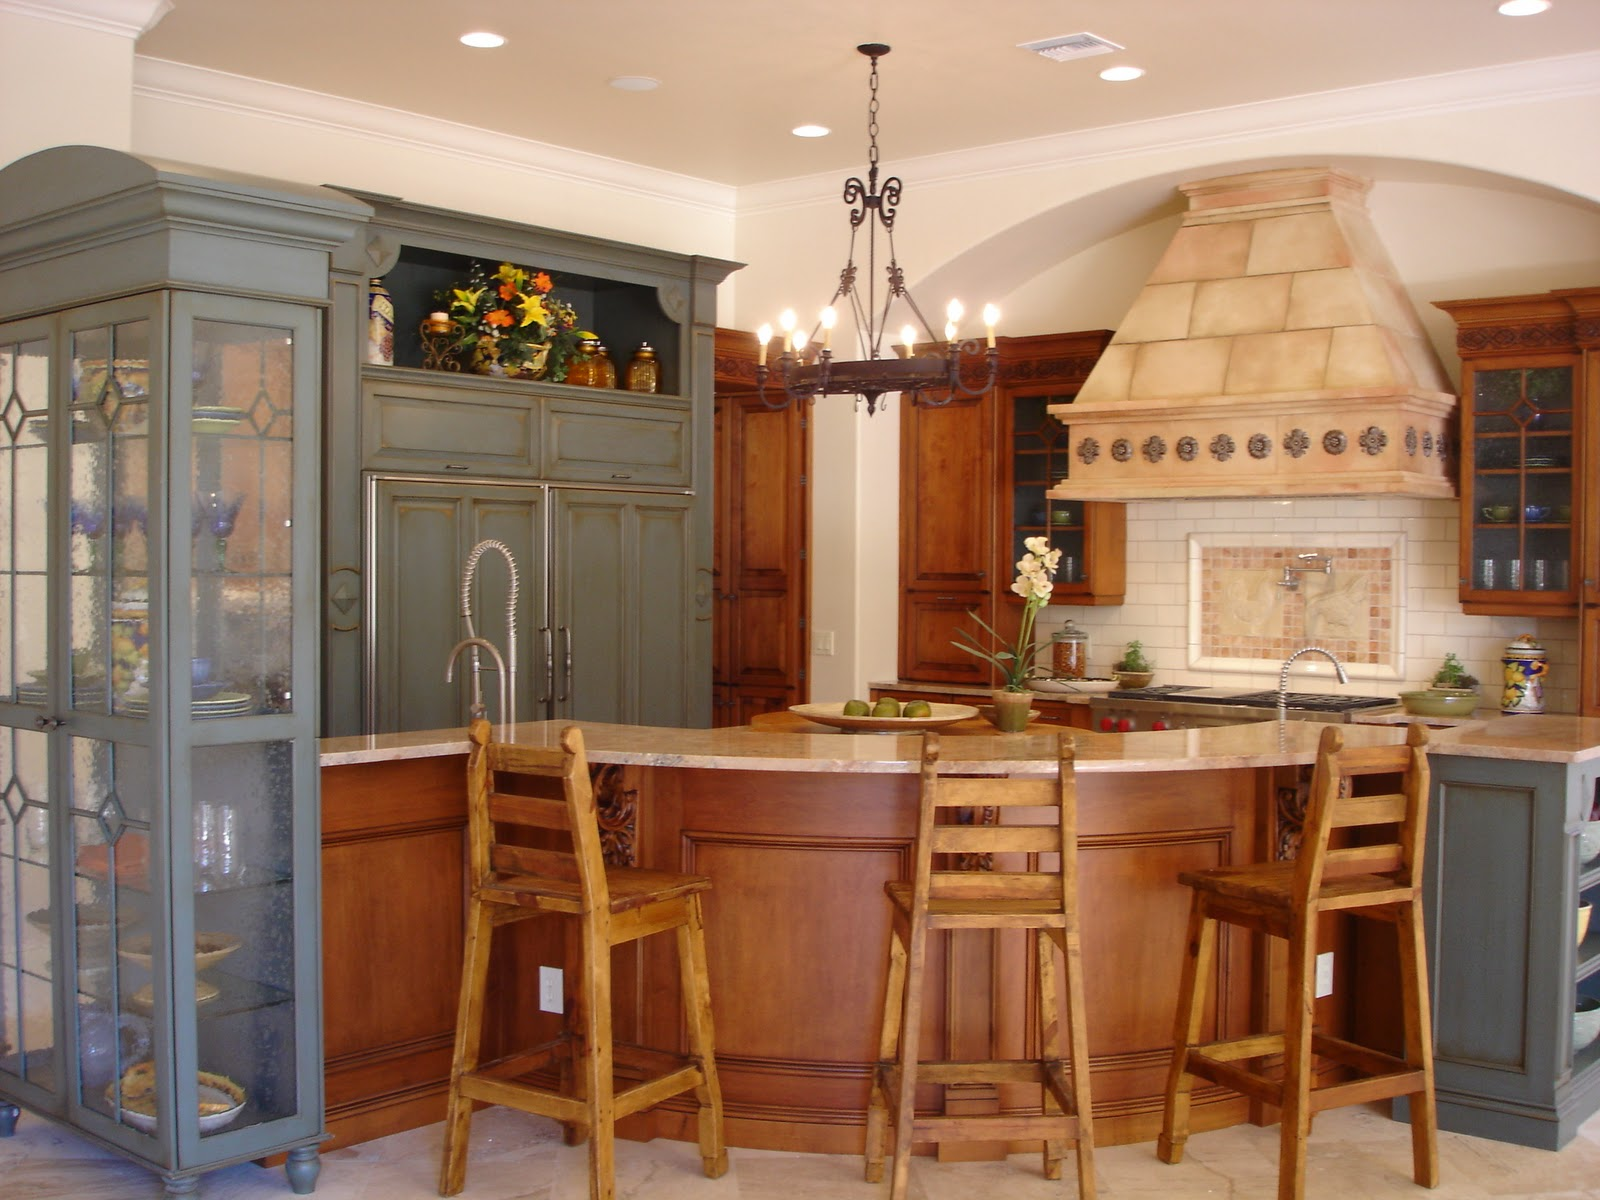 Key Interiors by Shinay: Tuscan Kitchen Ideas